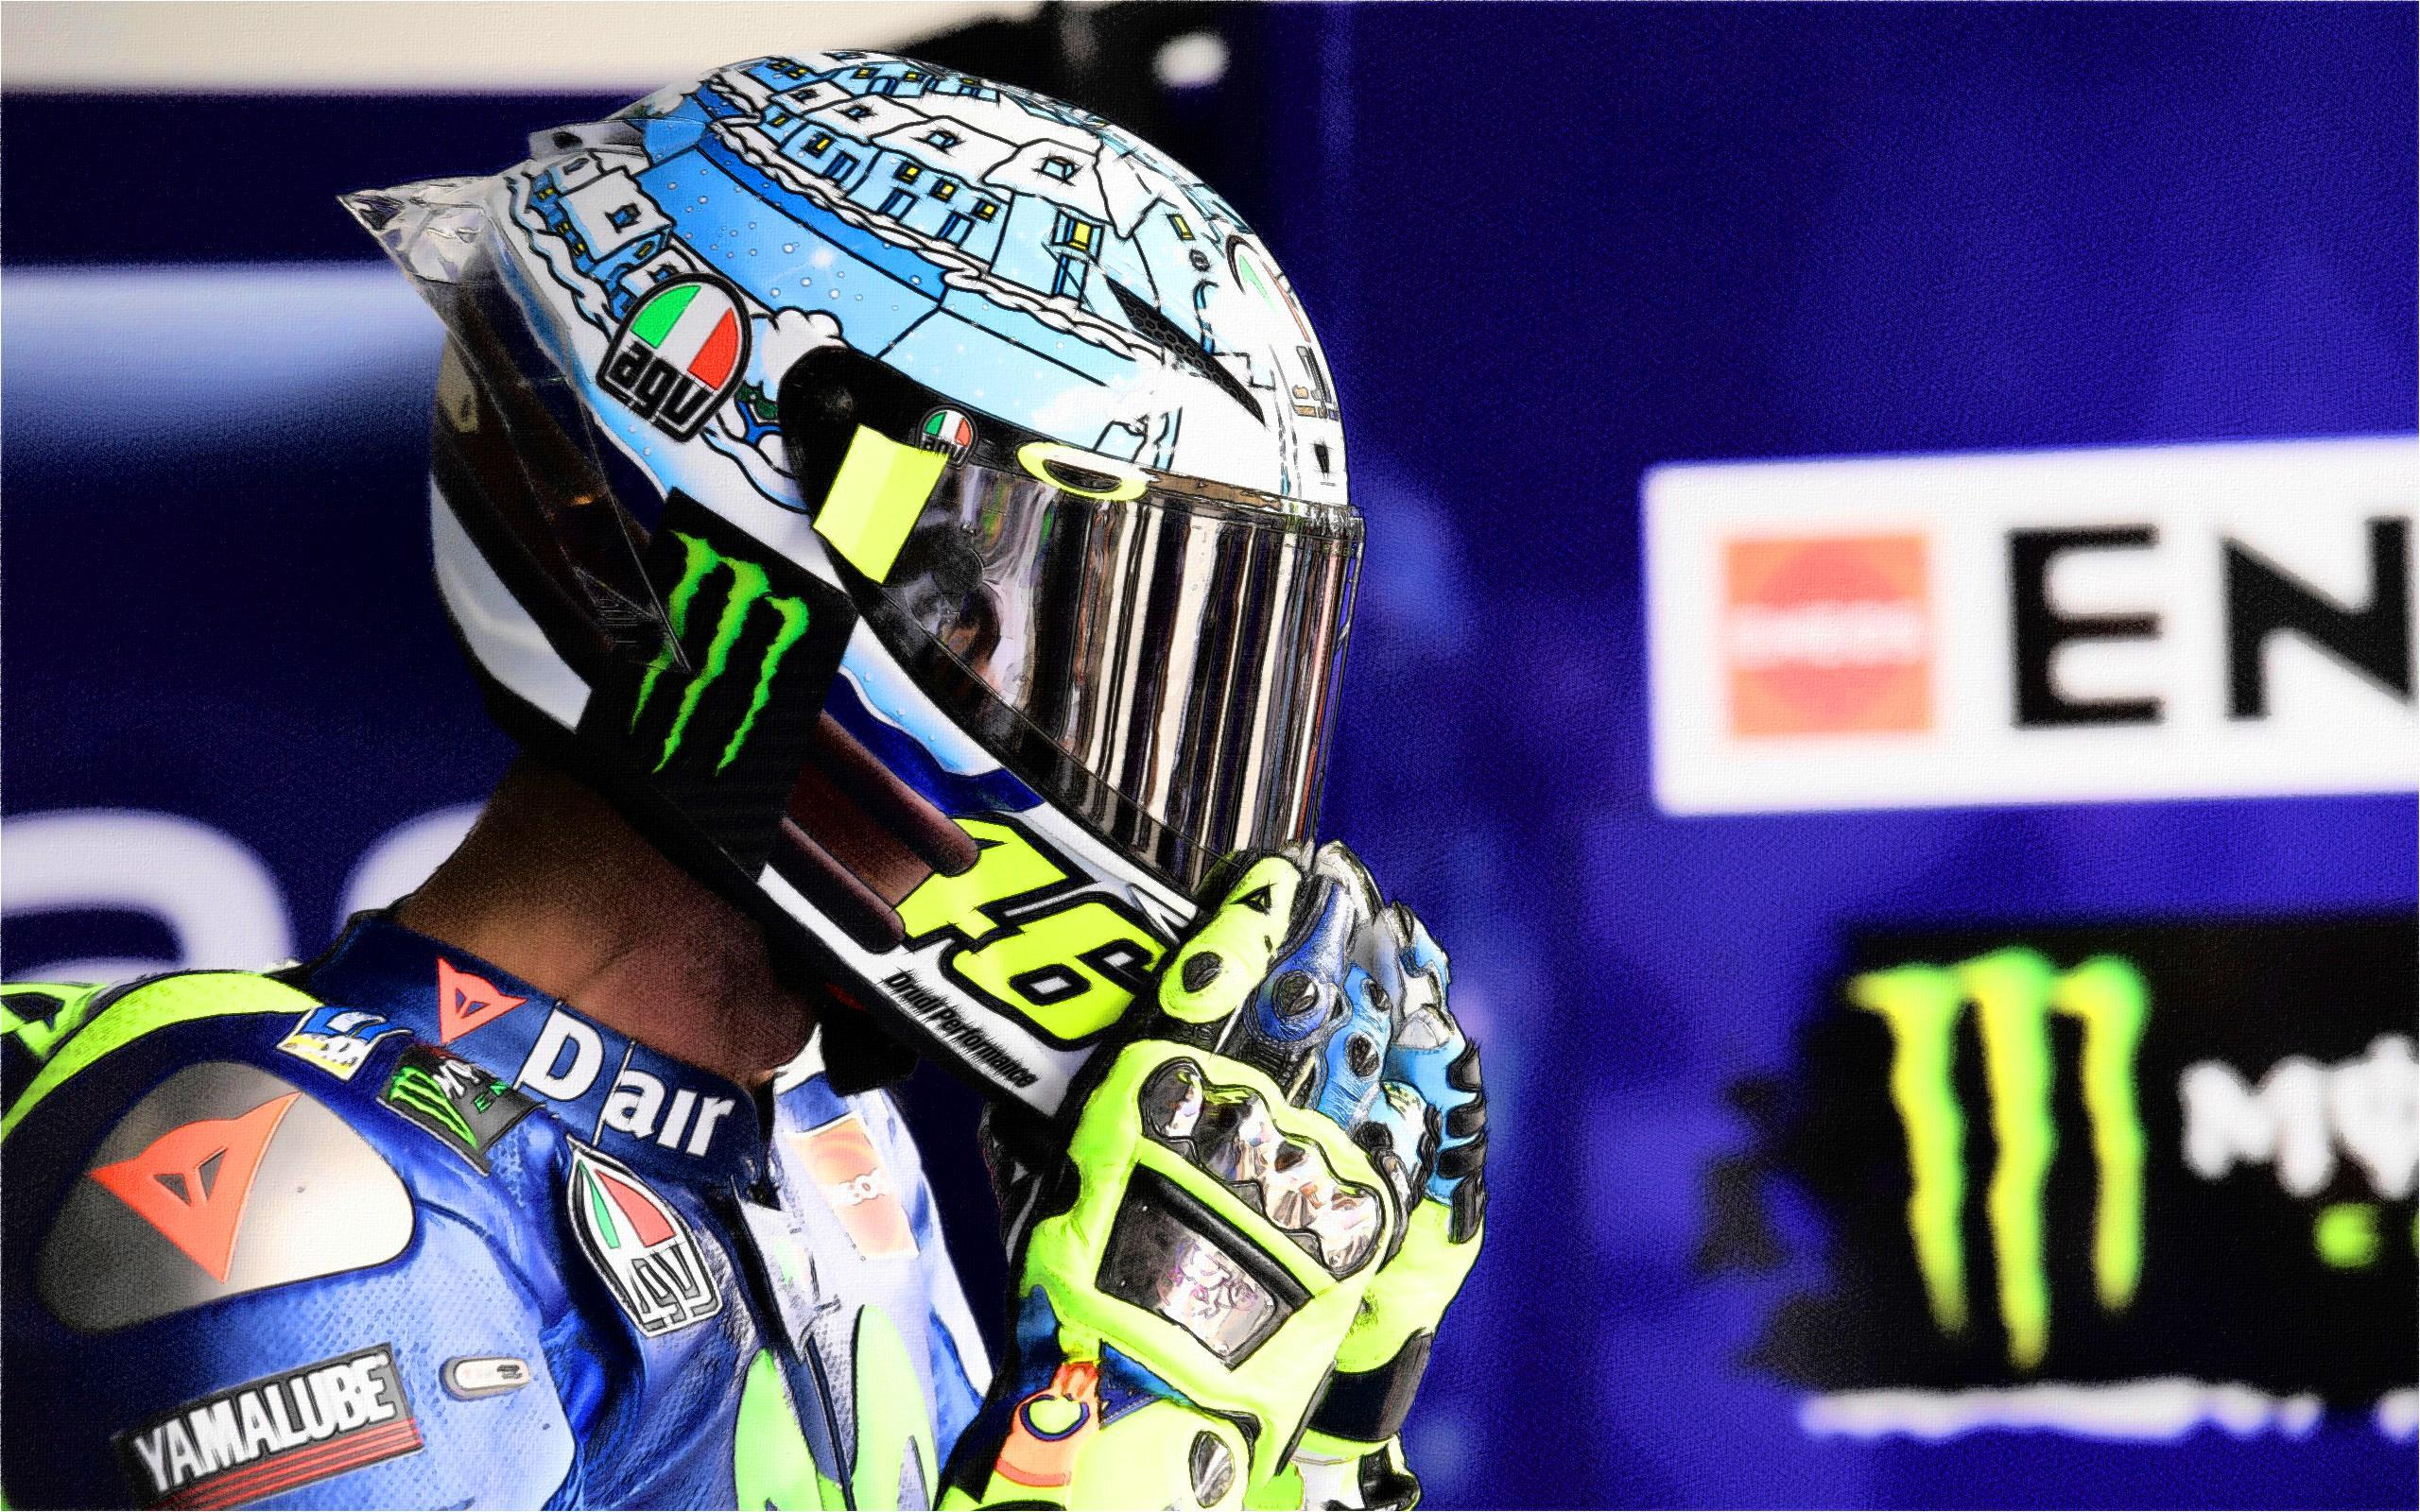 Download wallpapers Valentino Rossi, art, sportbikes, drawings